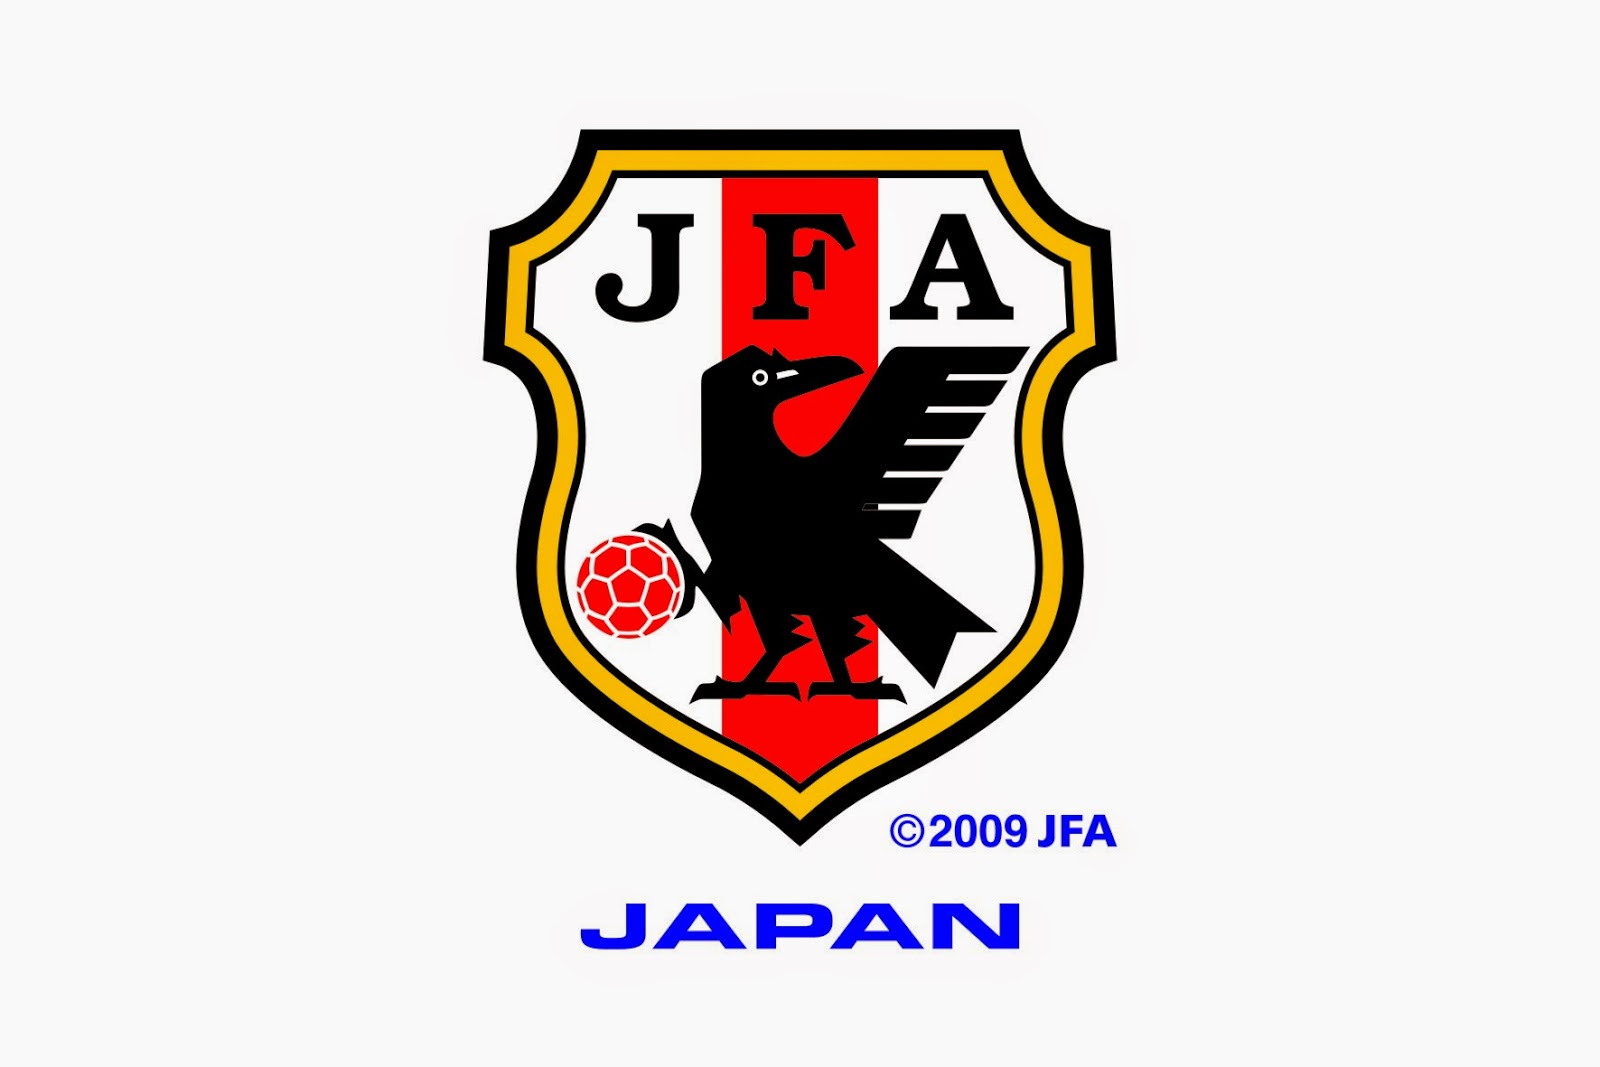 Japan national football team logo logo share